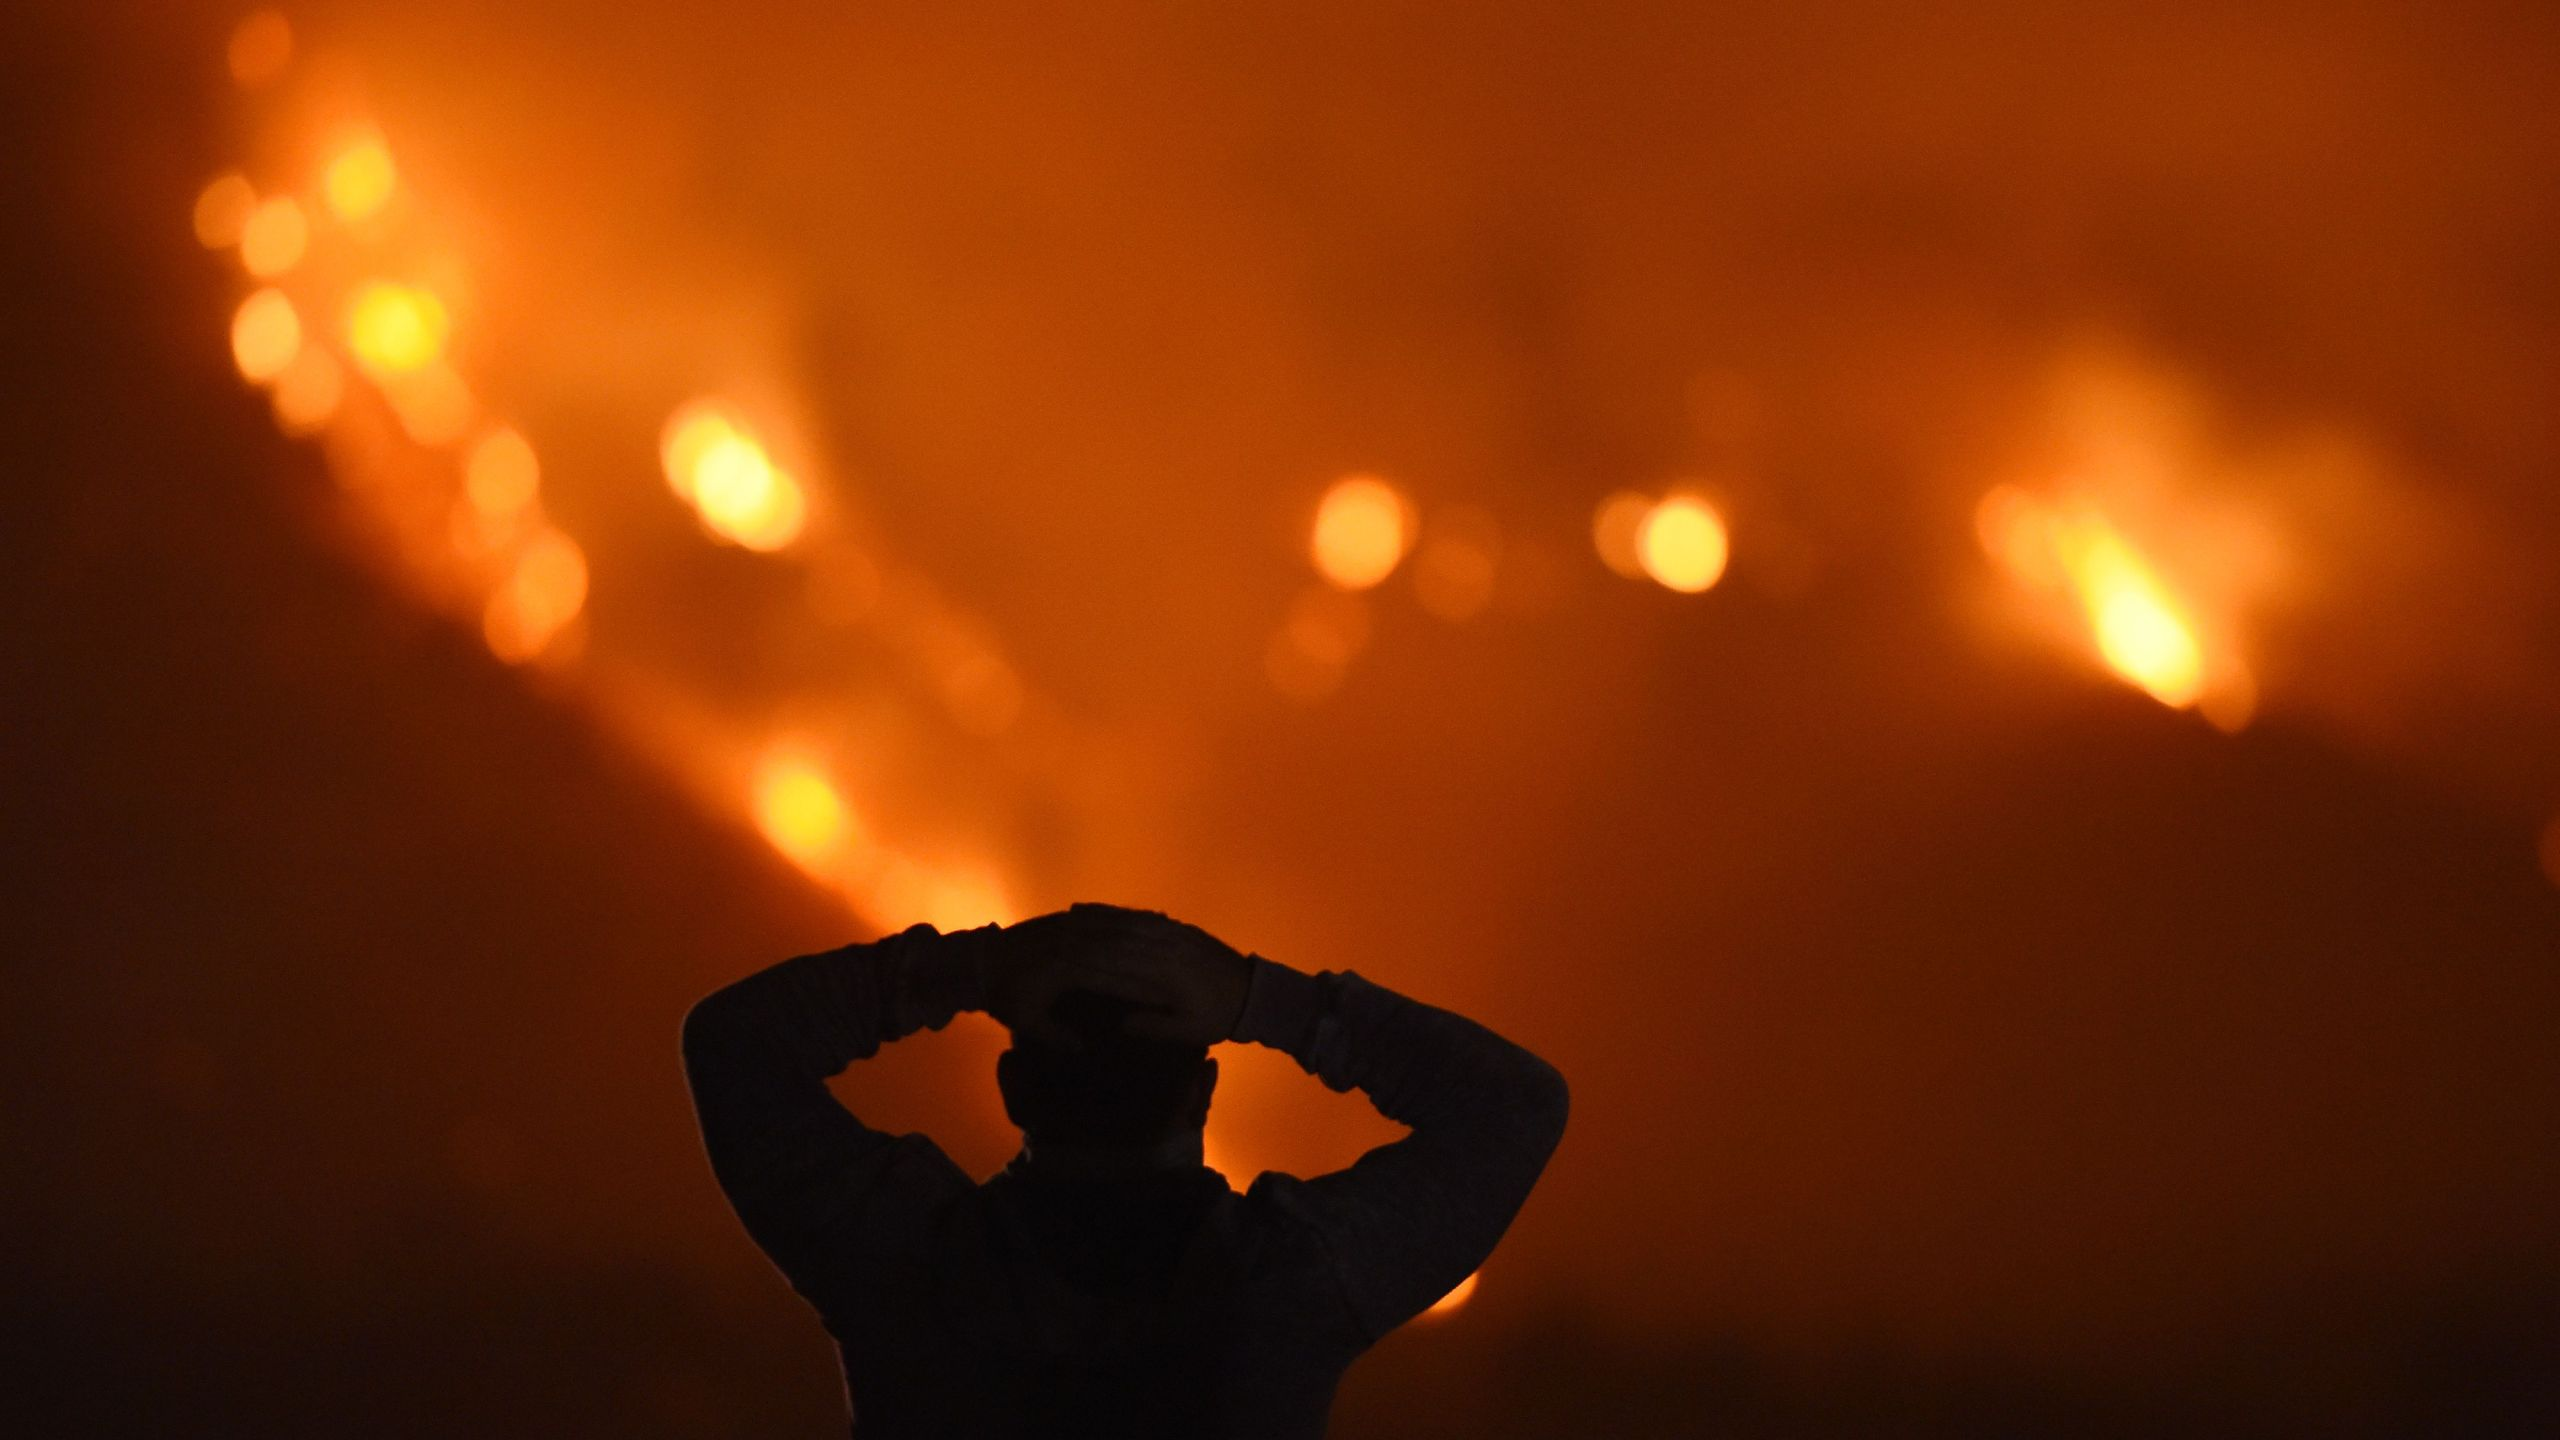 A man watches the Thomas Fire in the hills above Carpinteria on Dec. 11, 2017. (Credit: Robyn Beck / AFP / Getty Images)